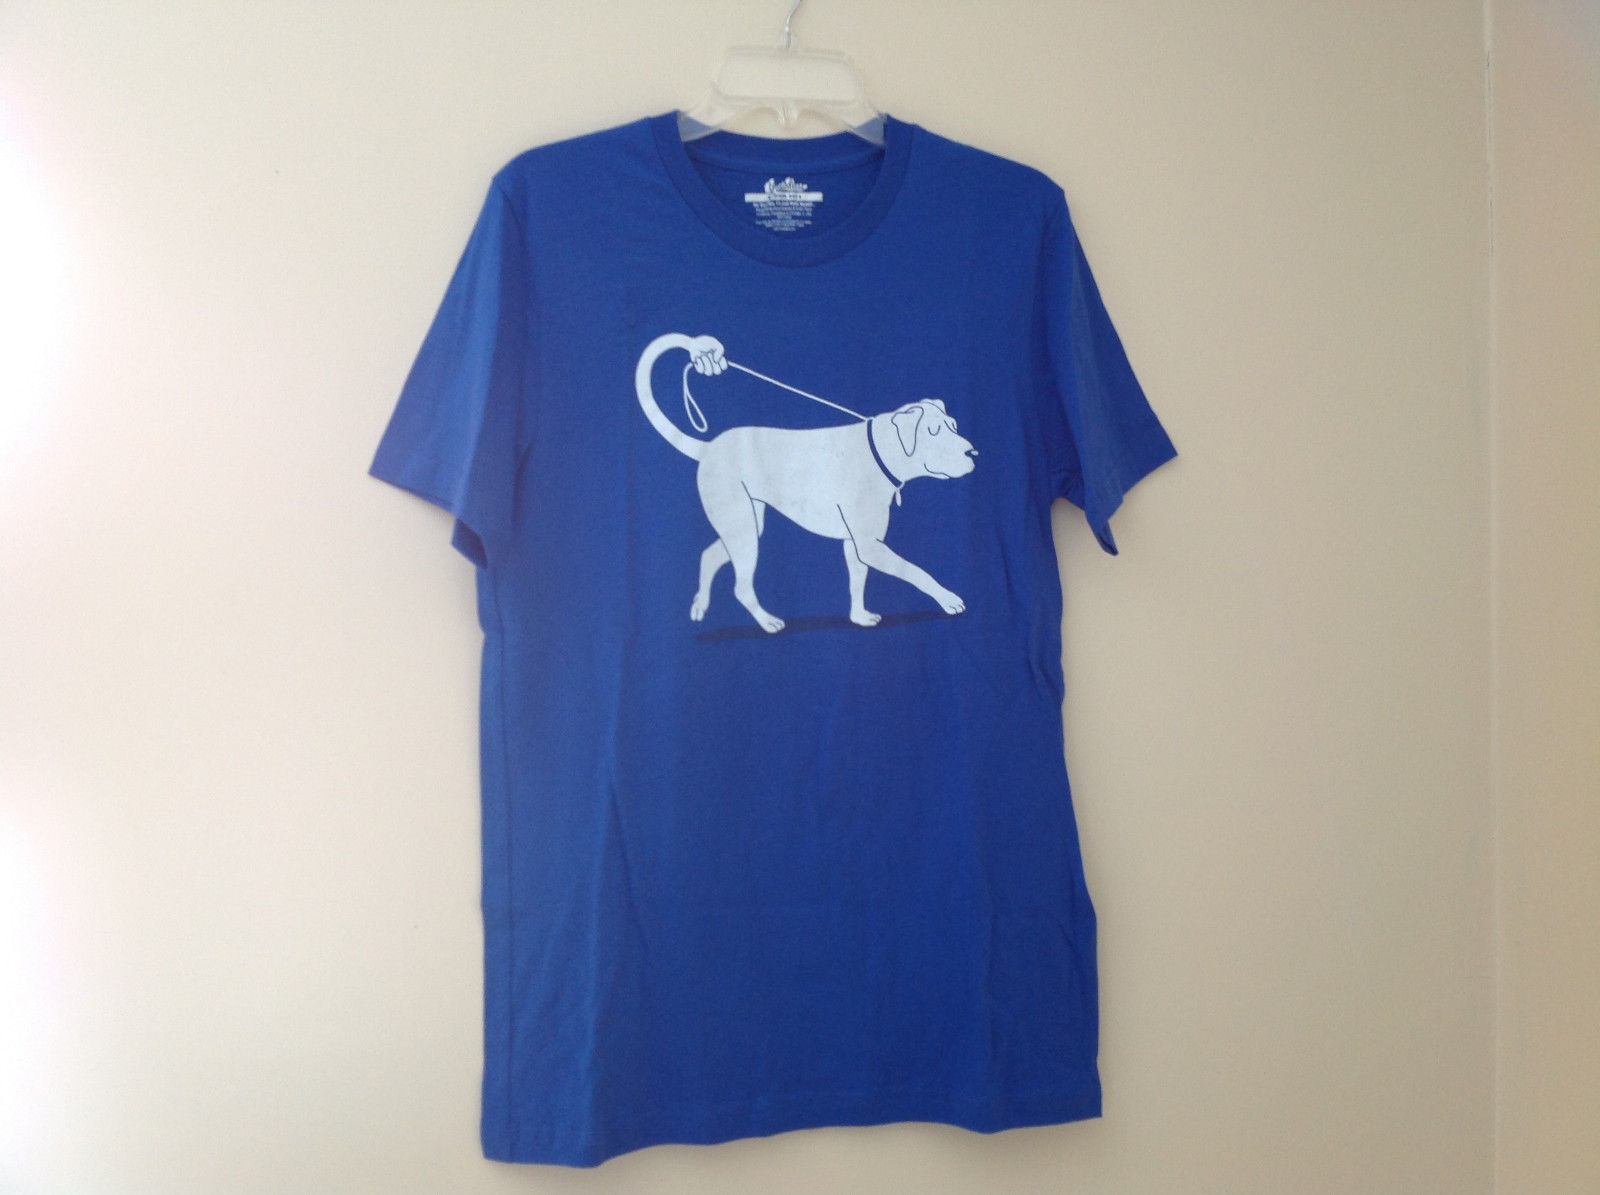 New Blue Dog walk Design Graphic Short Sleeve T-Shirt Size choice M or L